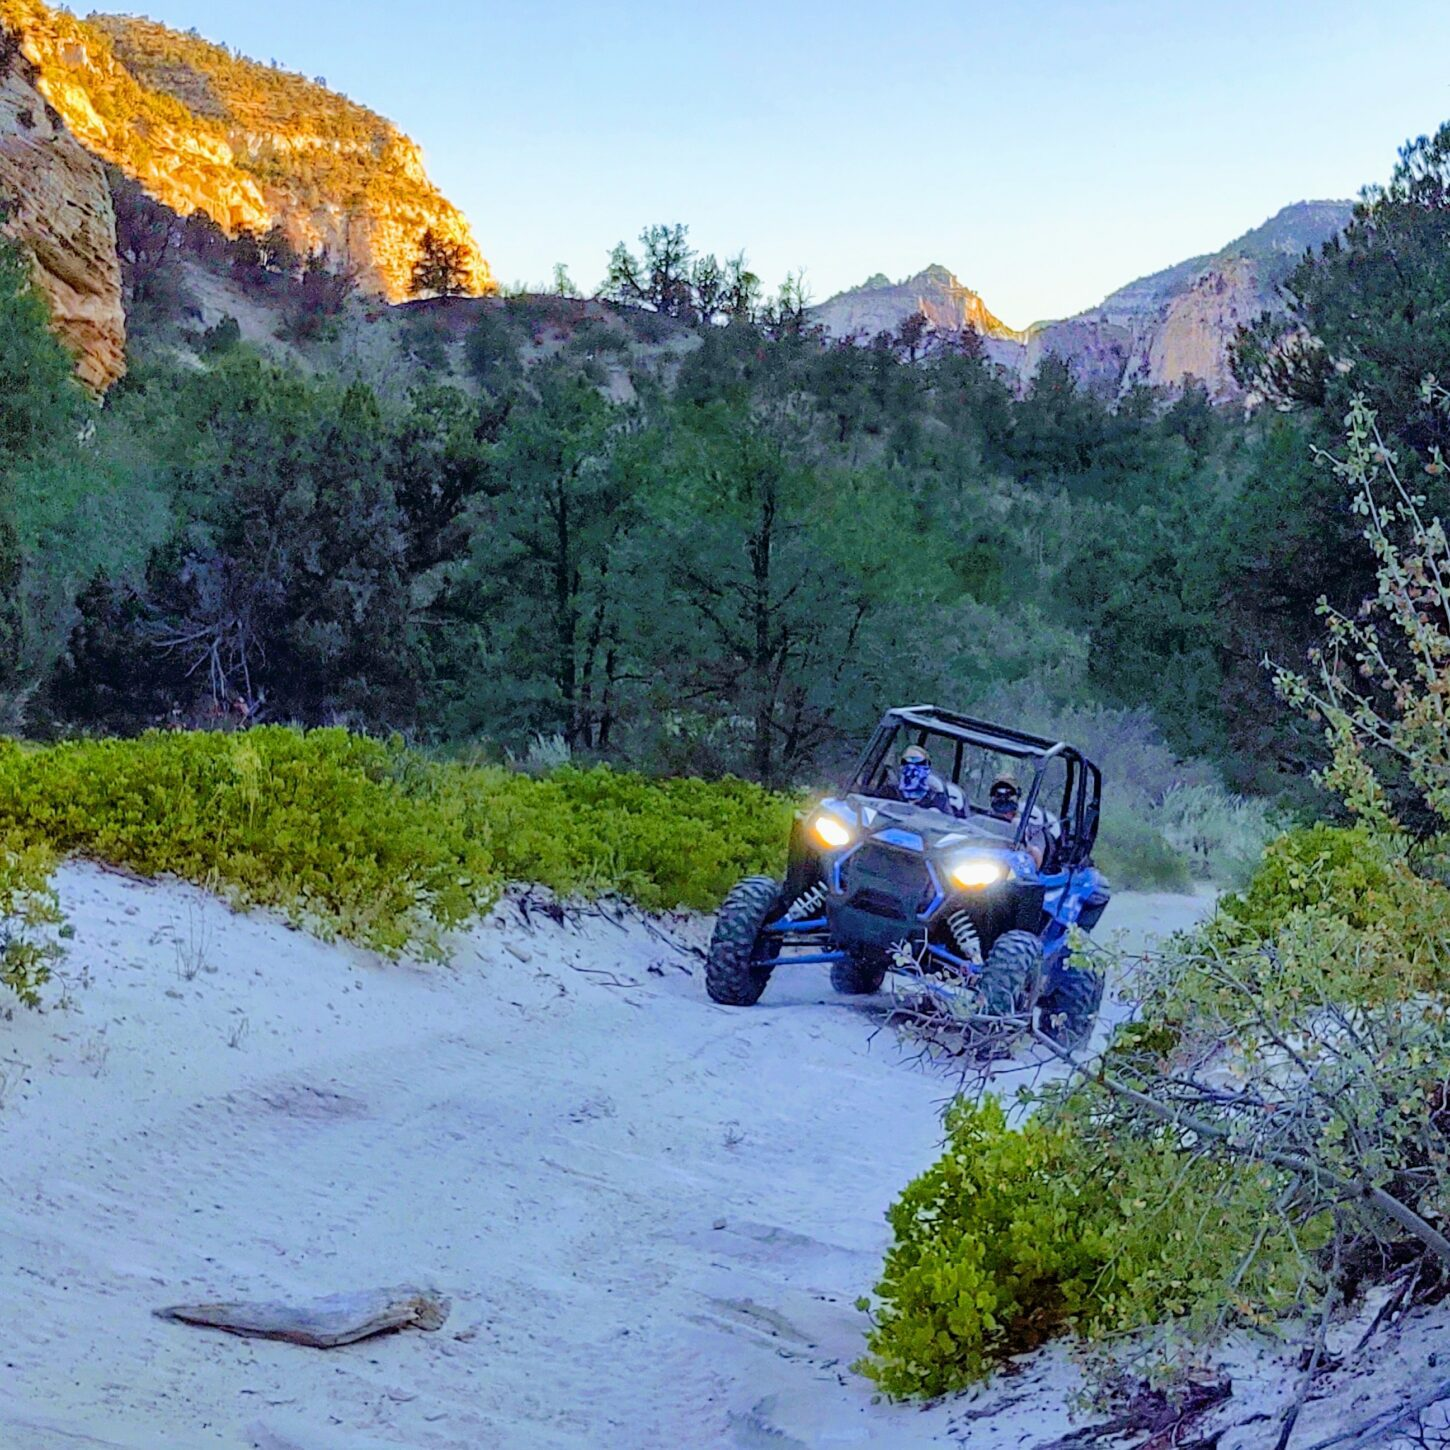 Hog Canyon ATV ride